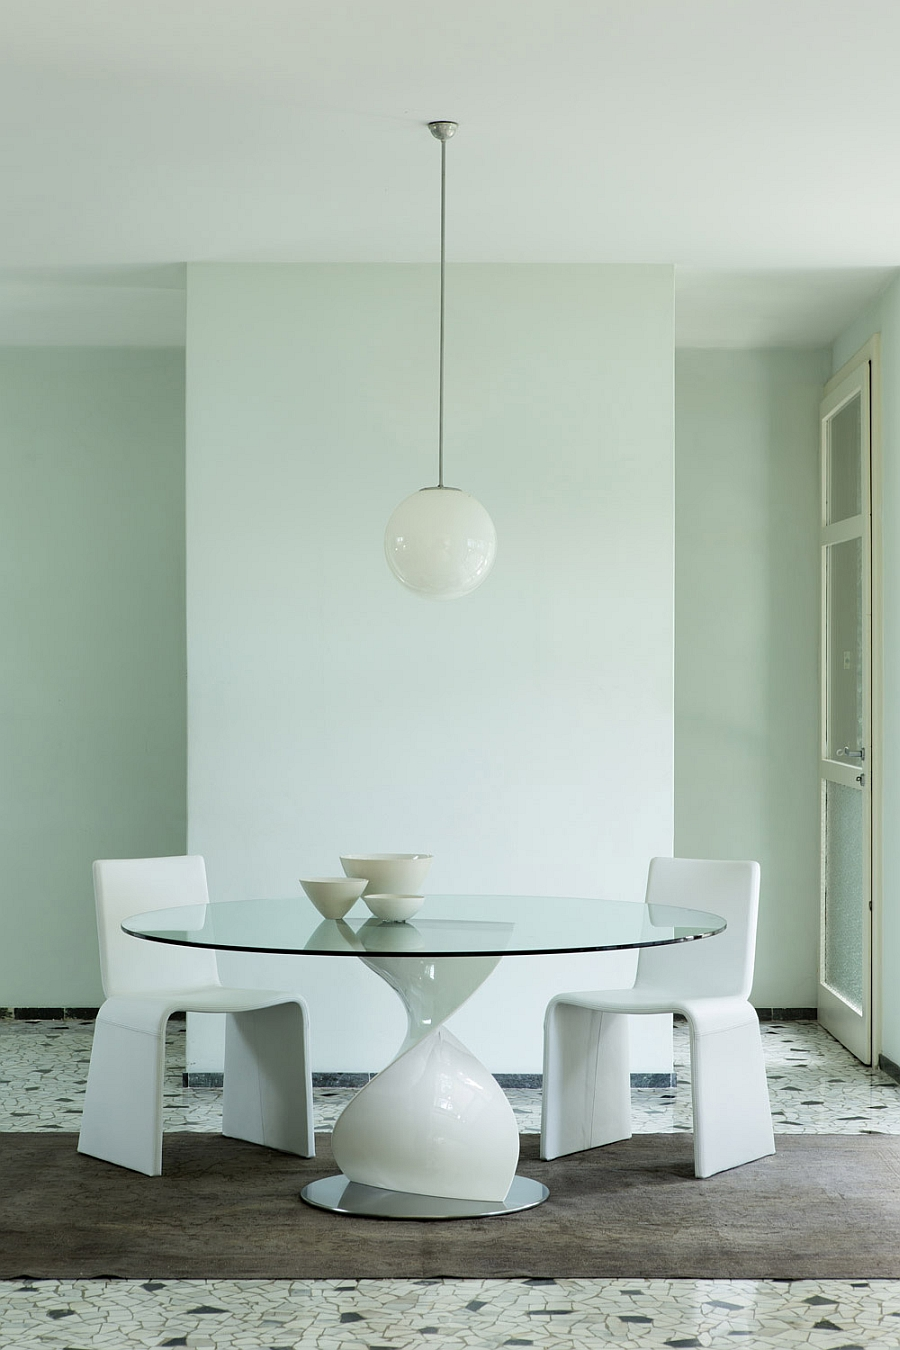 Contemporray dining table with white sculptural base and glass top